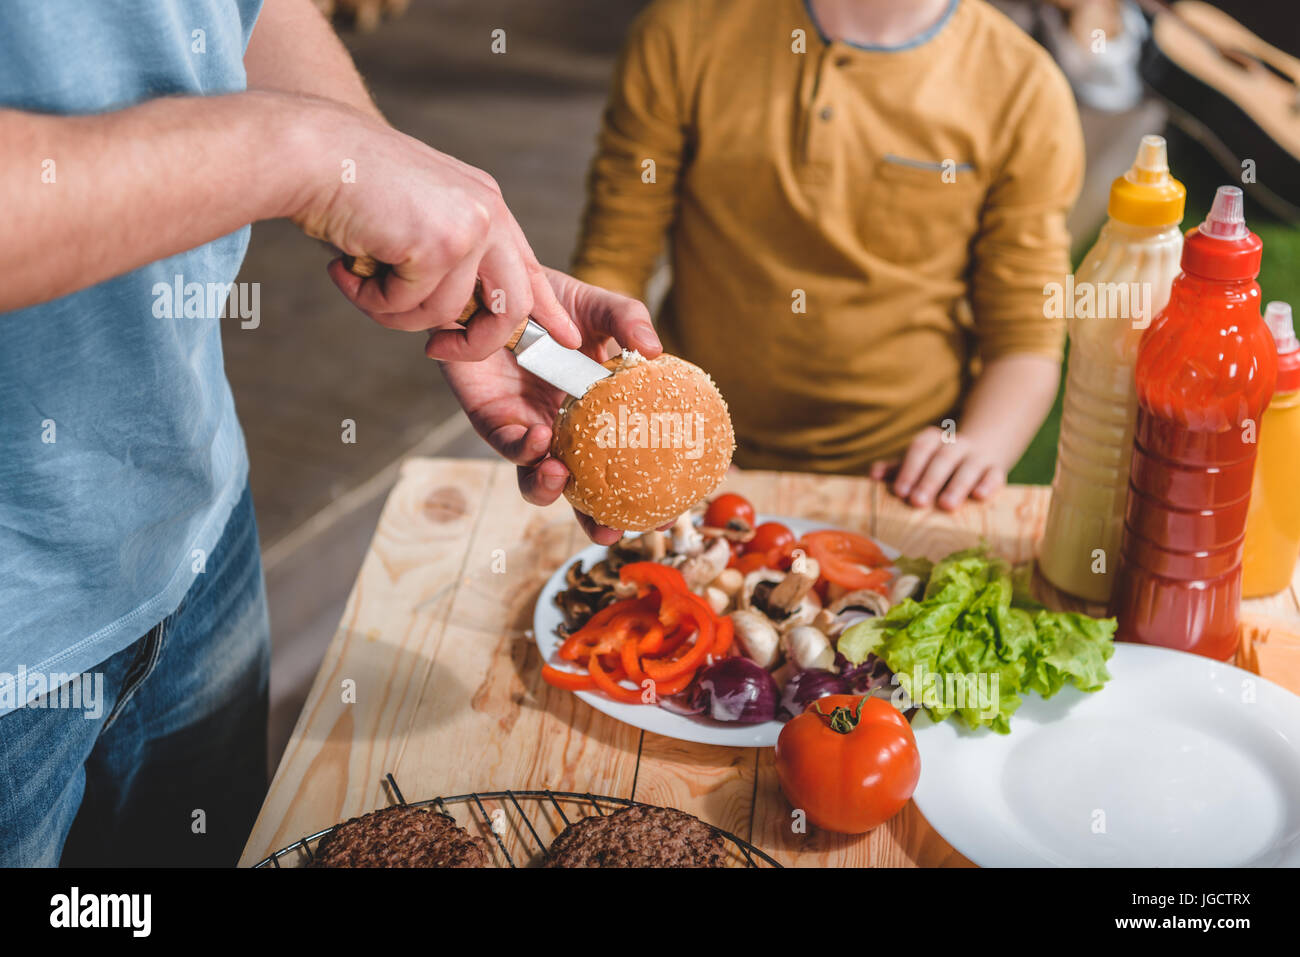 partial view of dad and son cooking meat burgers together - Stock Image